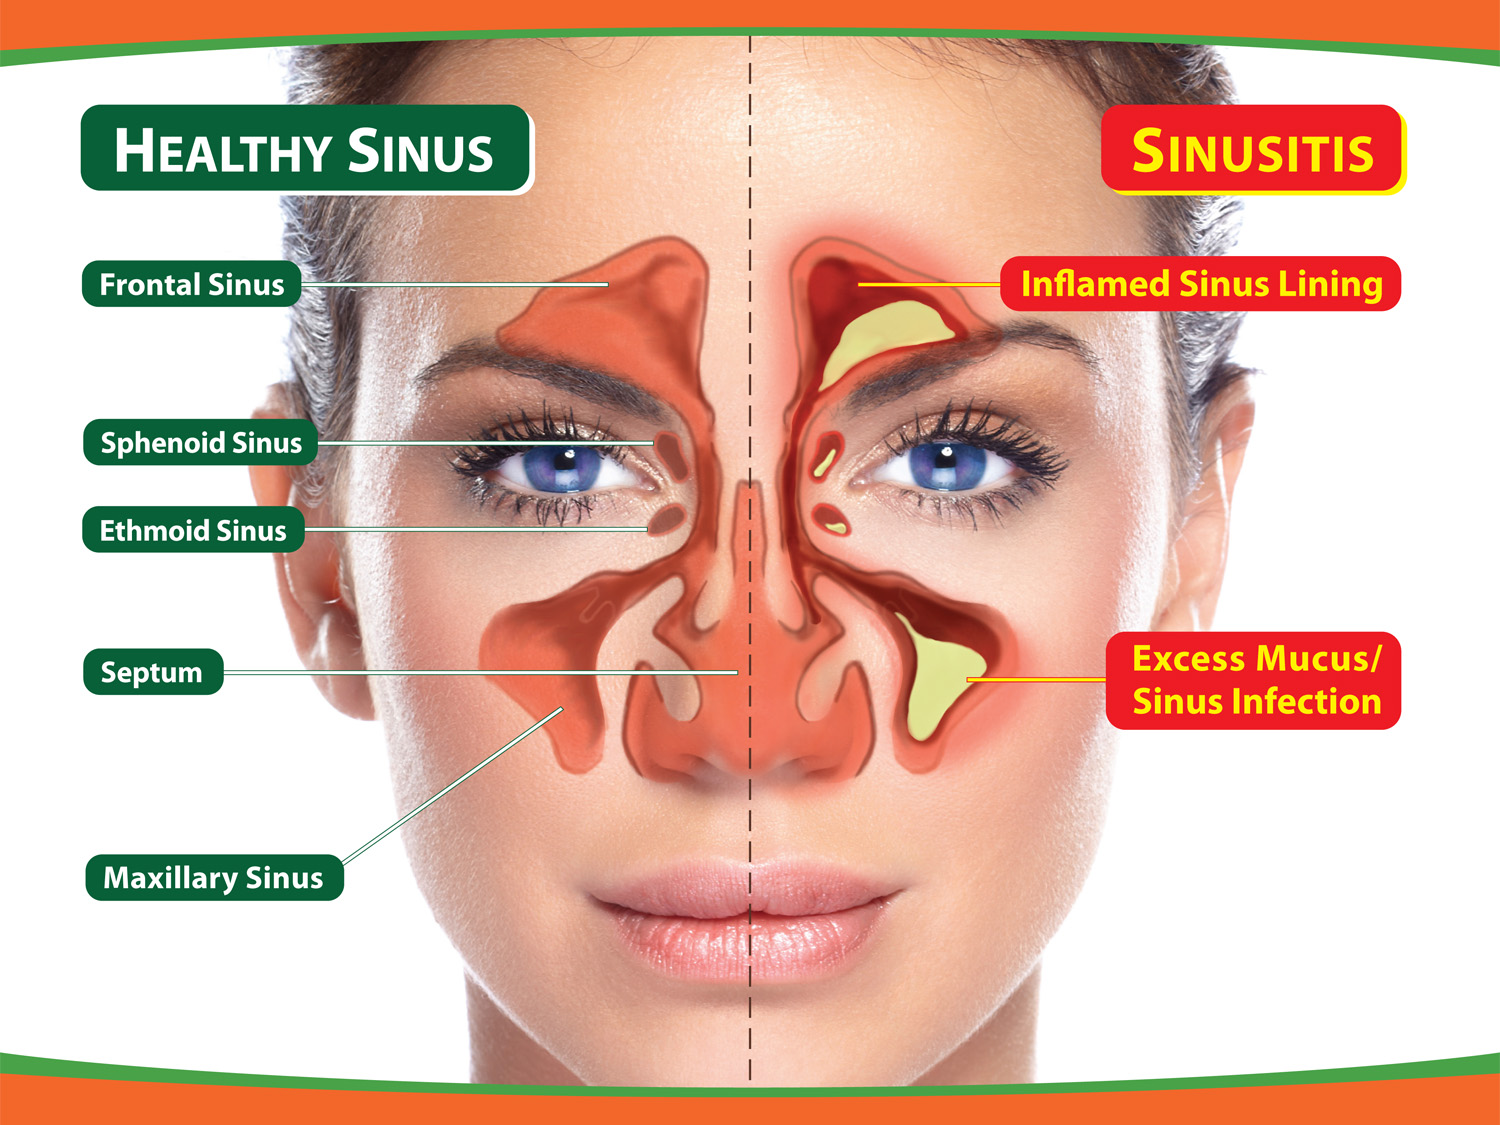 Endoscopic Sinus Surgery to Widen Sinus Openings and Remove Nasal Polyps and a Mucocele